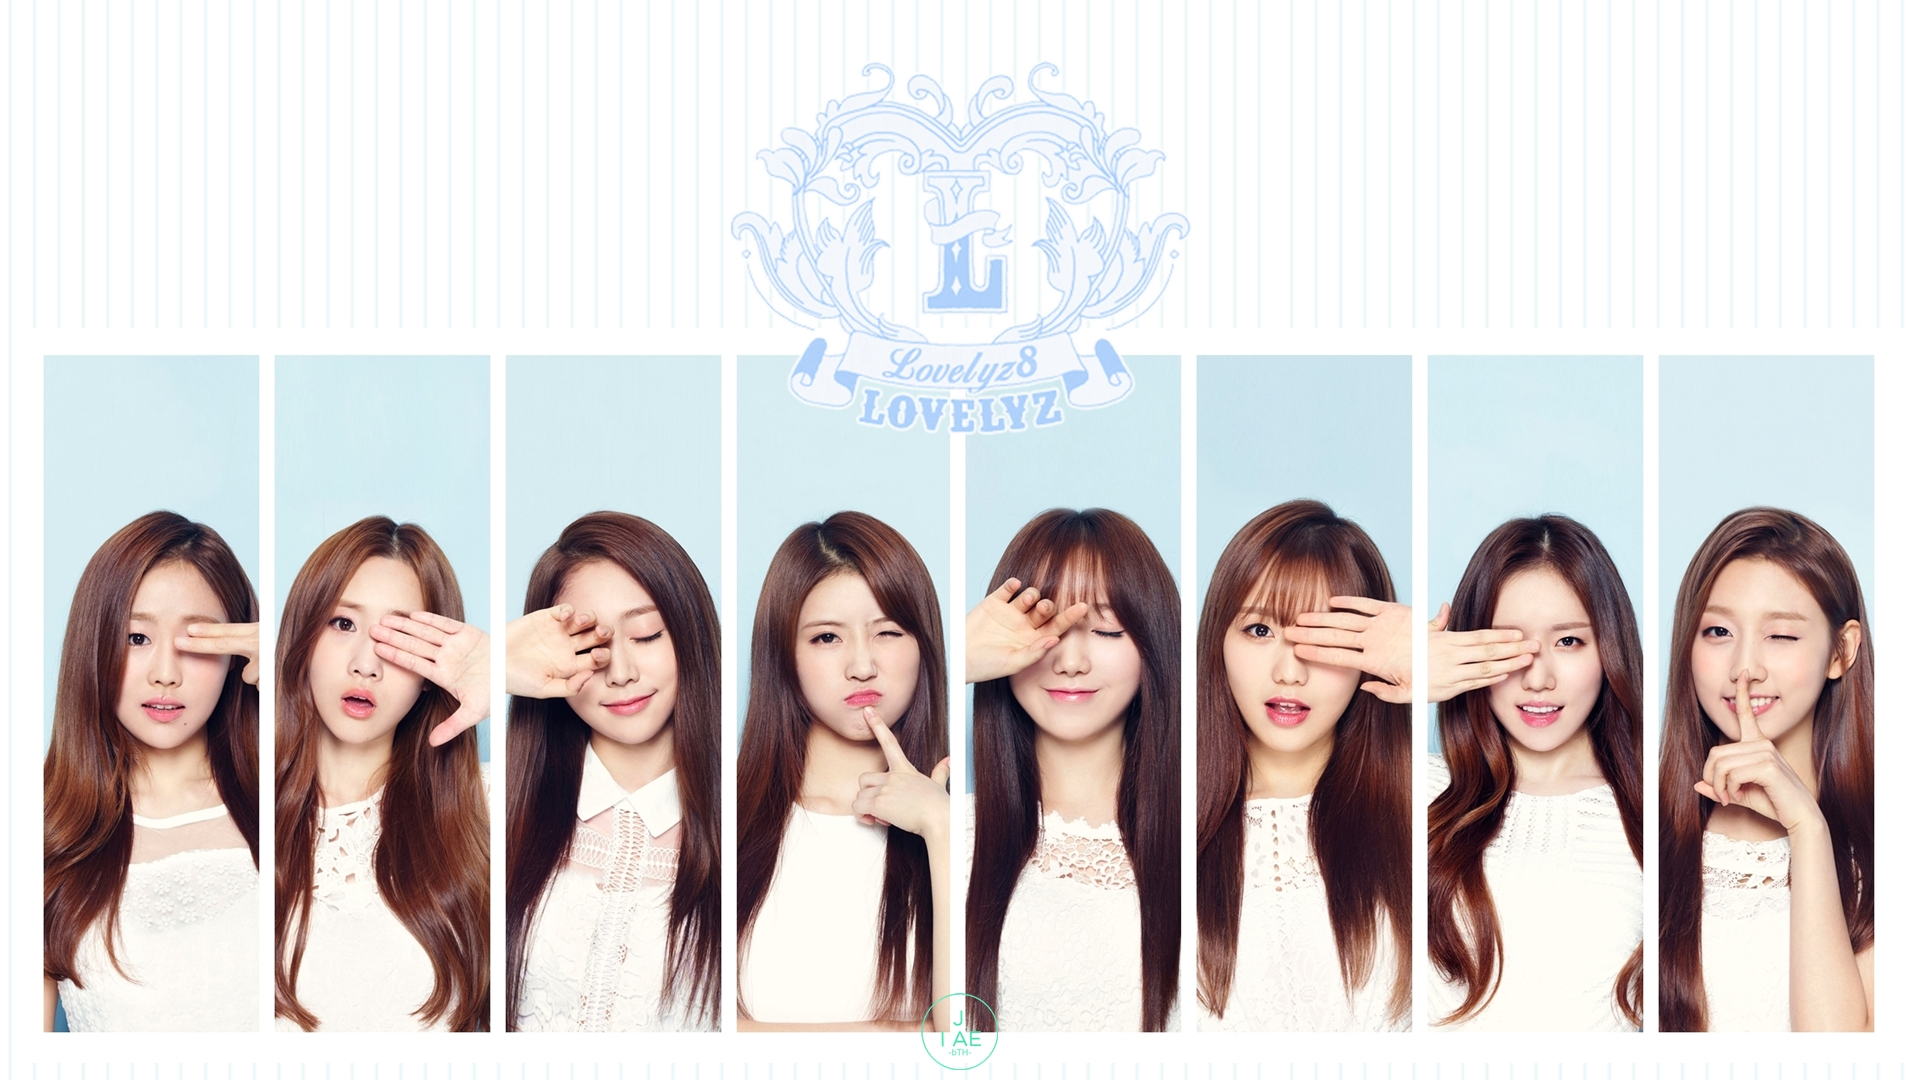 lovelyz hd wallpaper 42944 asiachan kpop image board rh kpop asiachan com